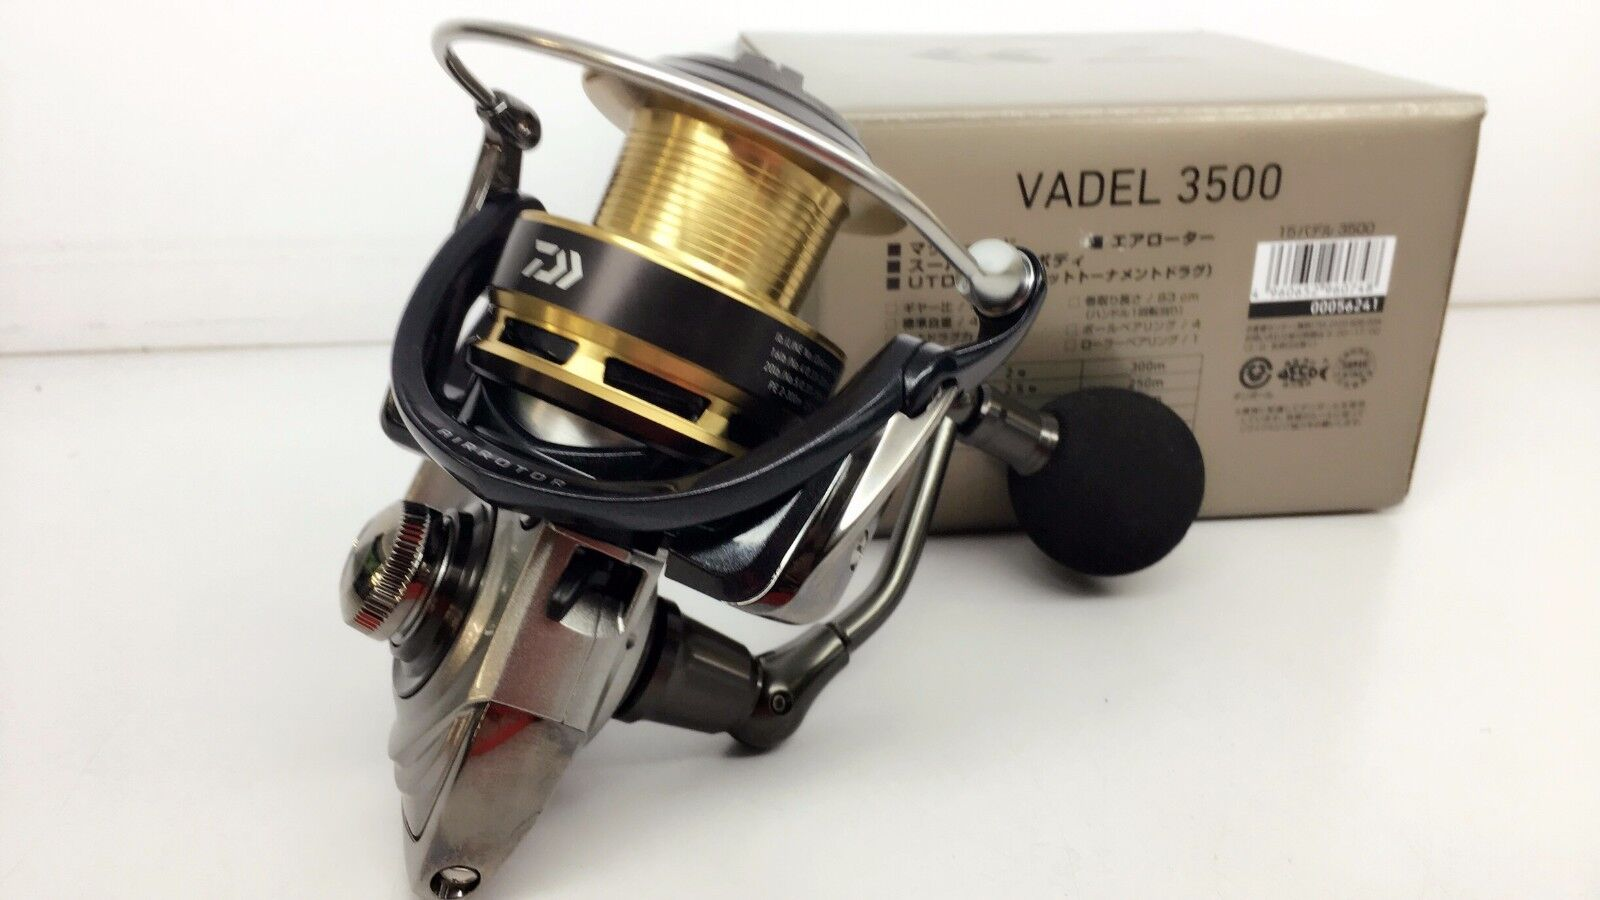 DAIWA VADEL 3500 MAG SEALED Spinning Reel MAGSEALED Fedex Priority 2day to USA